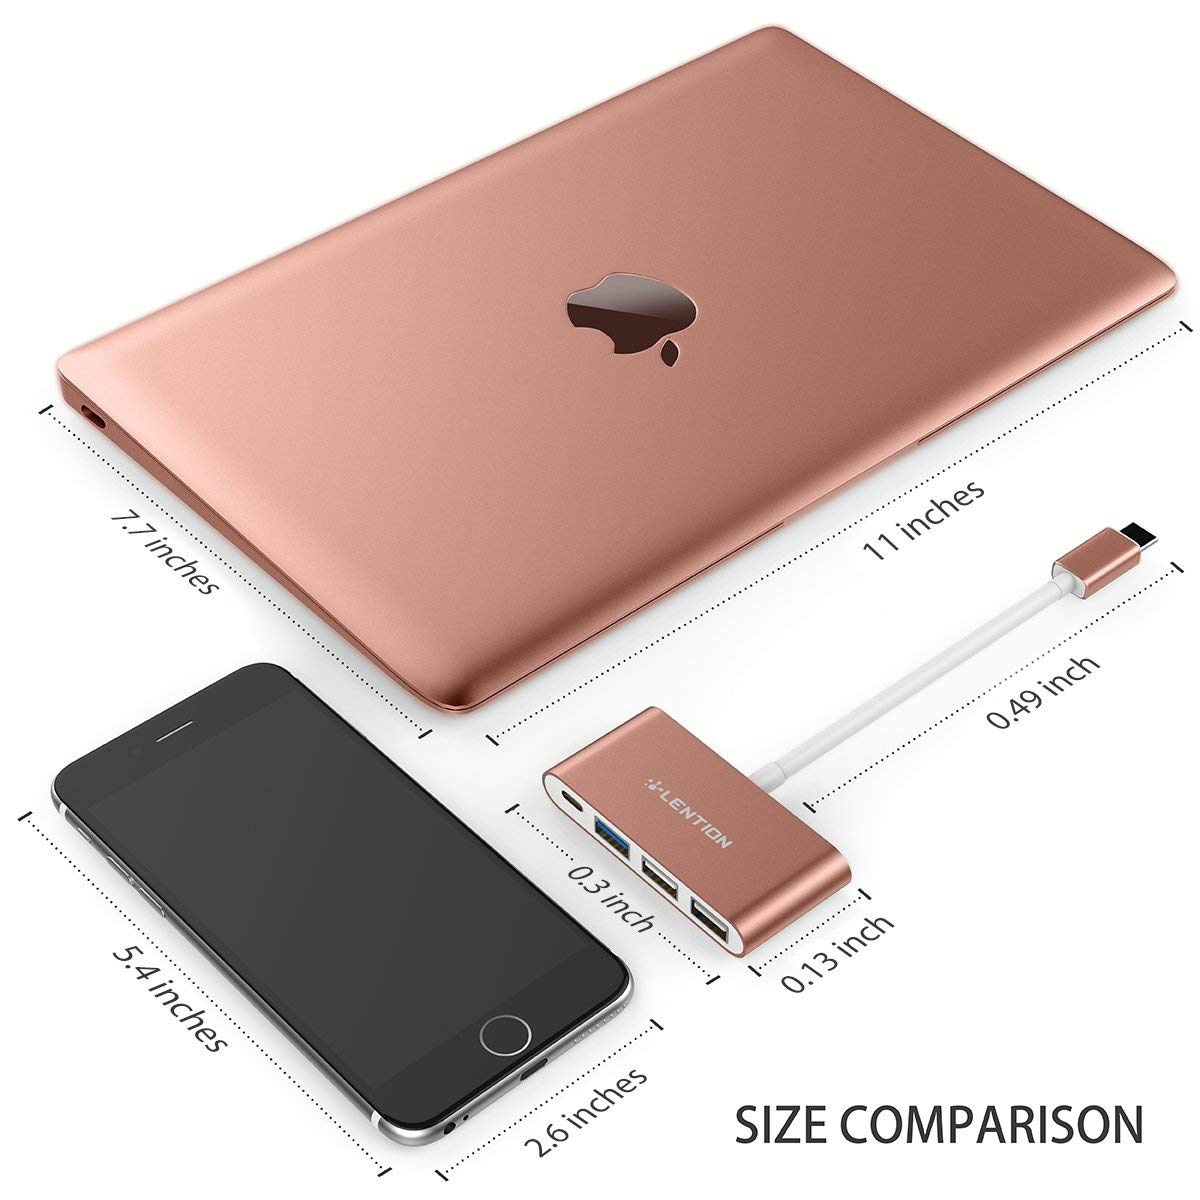 LENTION 4-in-1 USB-C Hub with Type C, USB 3.0, USB 2.0 Compatible MacBook Air 2018 2019, MacBook Pro 13/15 (Thunderbolt 3), ChromeBook, More, Multiport Charging & Connecting Adapter (Rose Gold) by LENTION